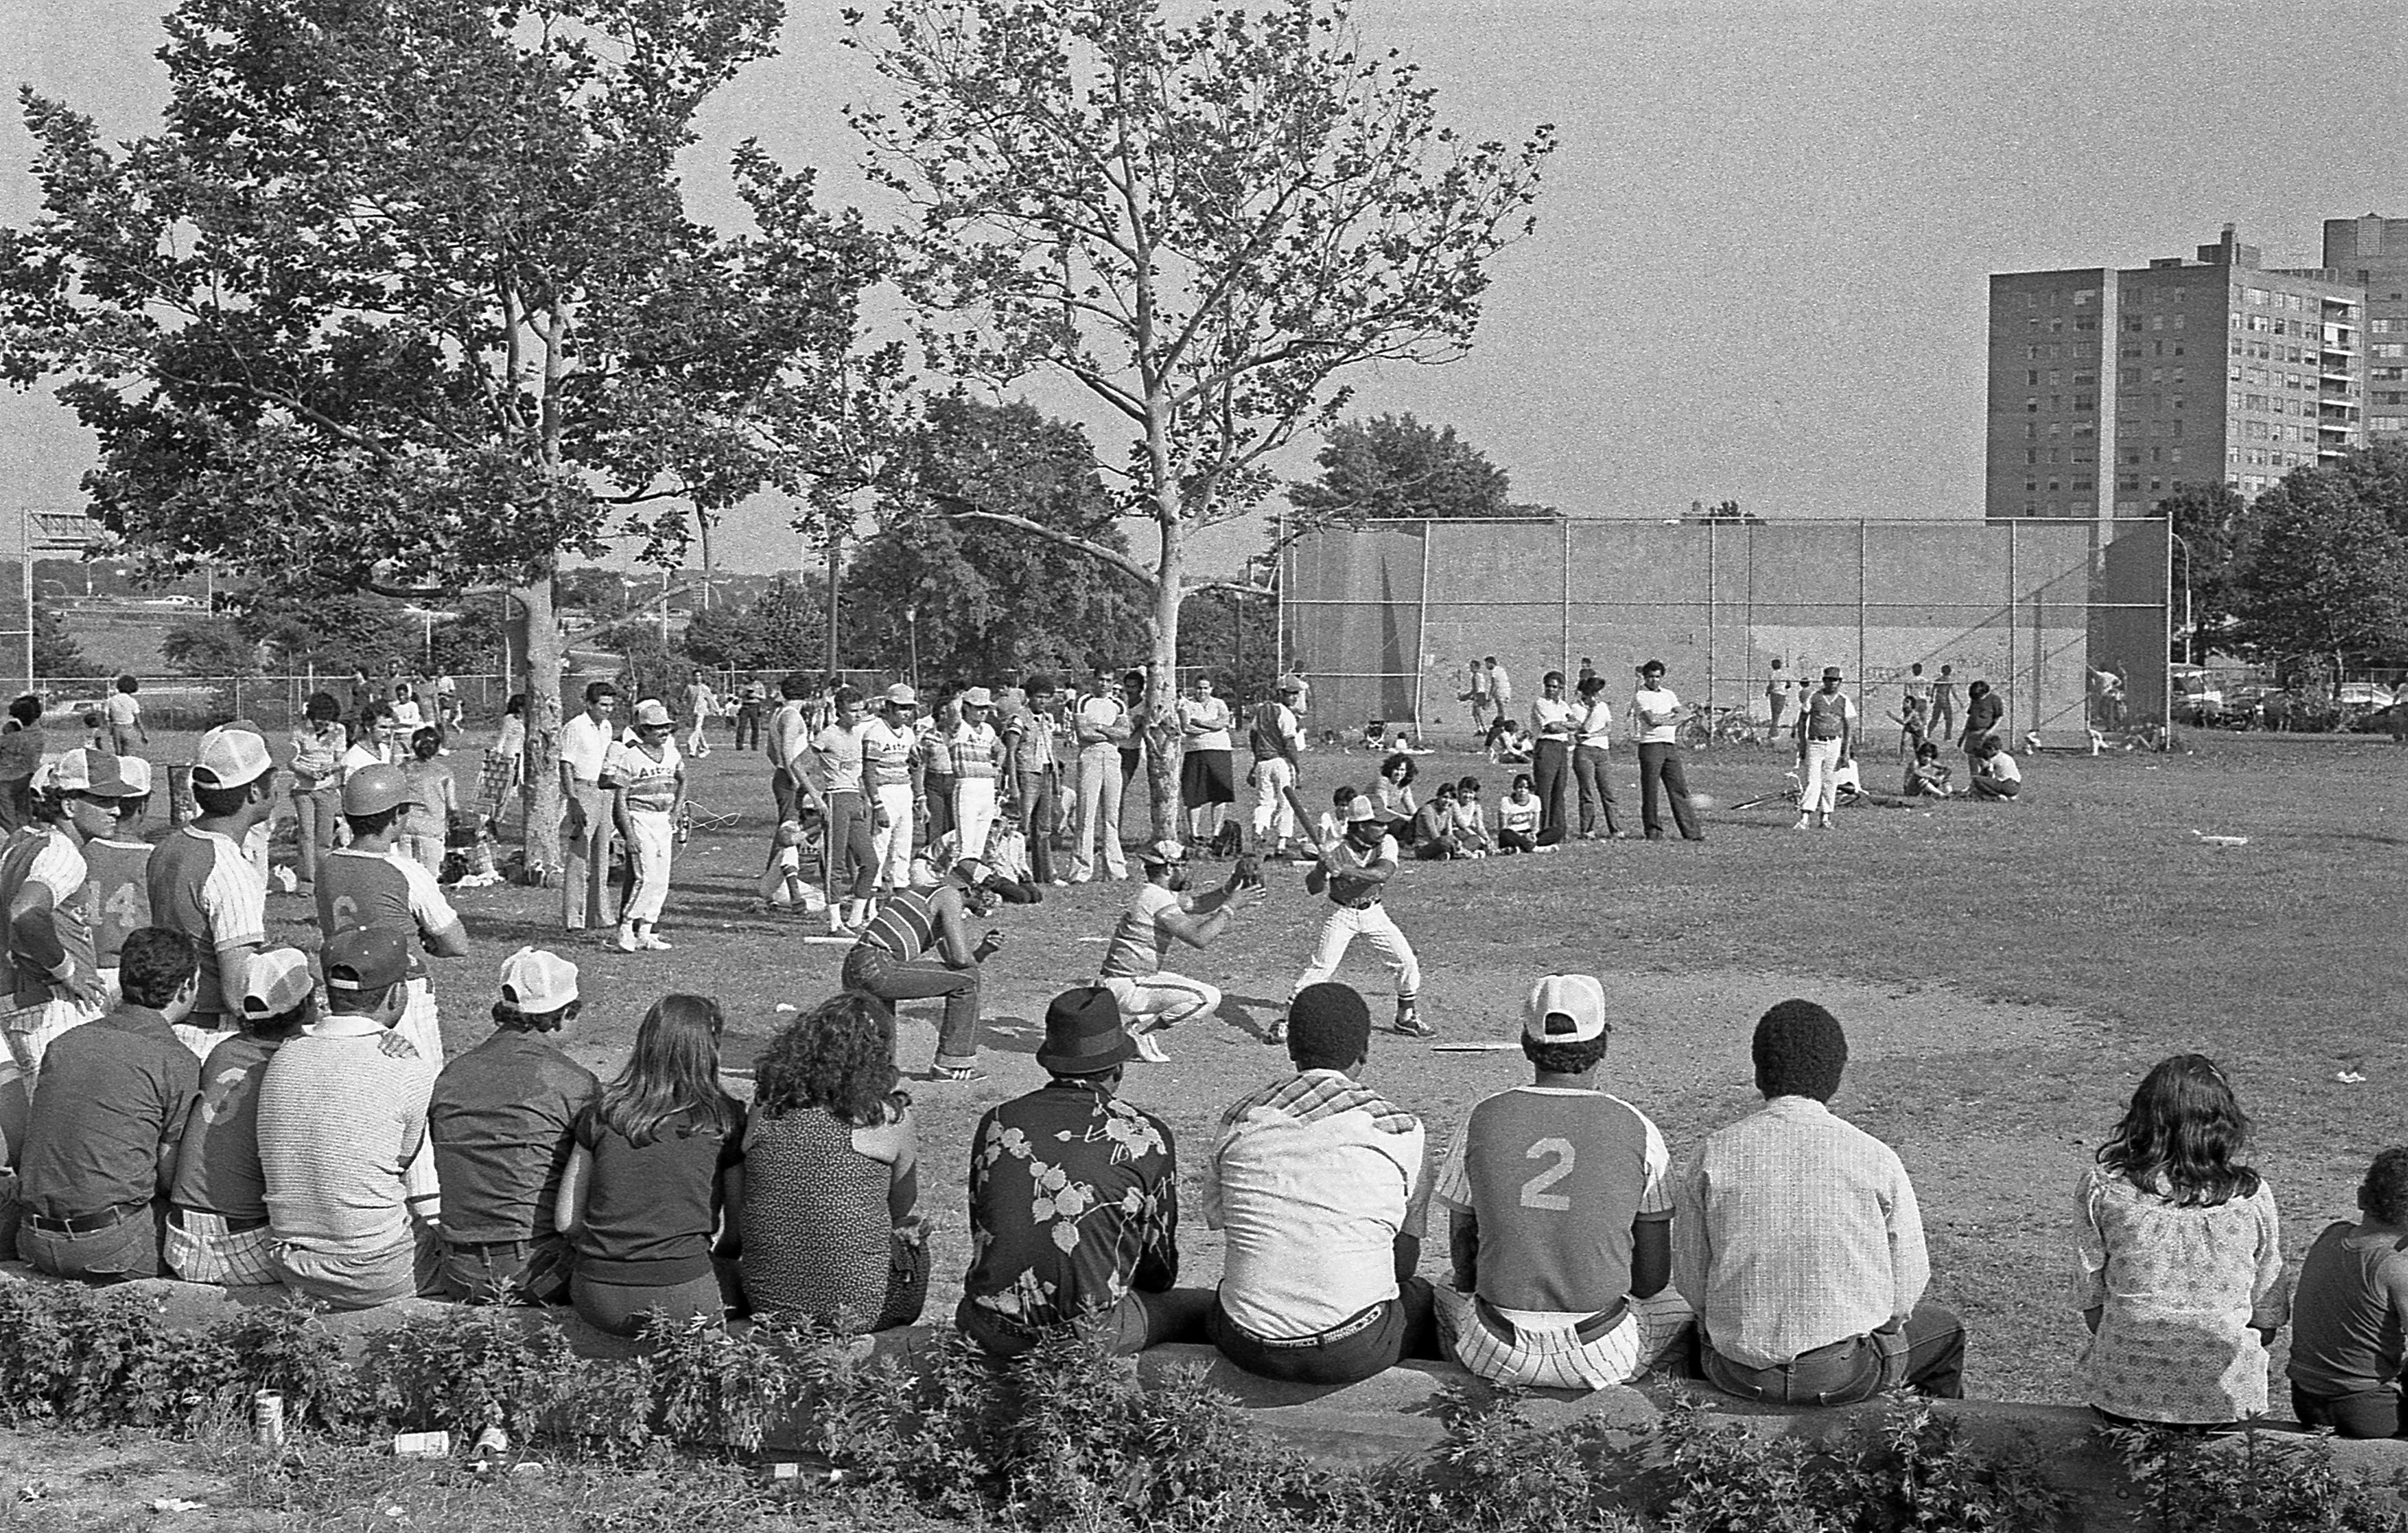 People watching a ball game outside